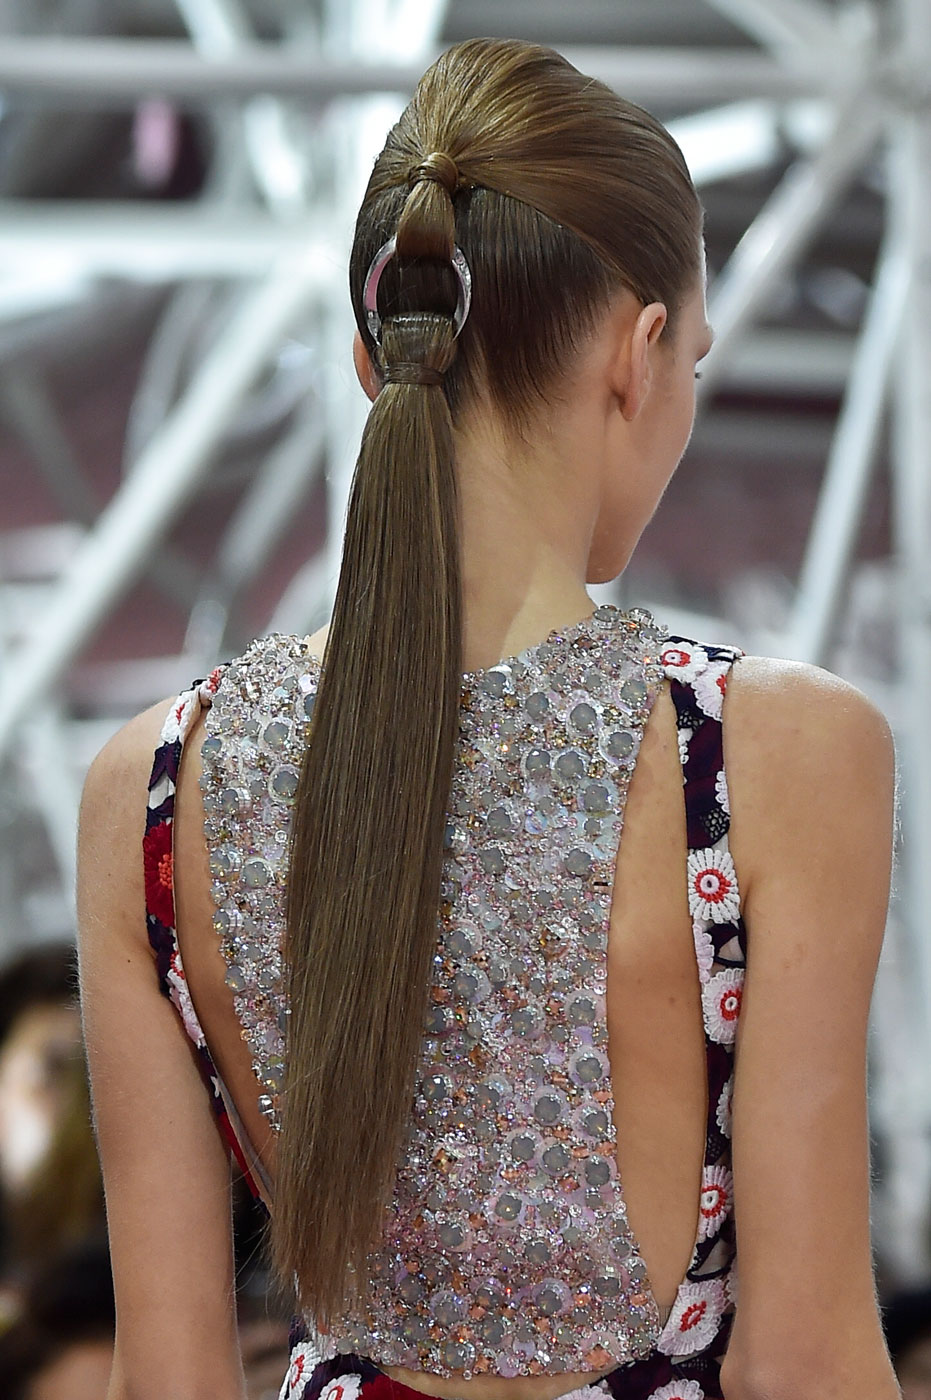 Christian-Dior-fashion-runway-show-close-ups-haute-couture-paris-spring-summer-2015-the-impression-066